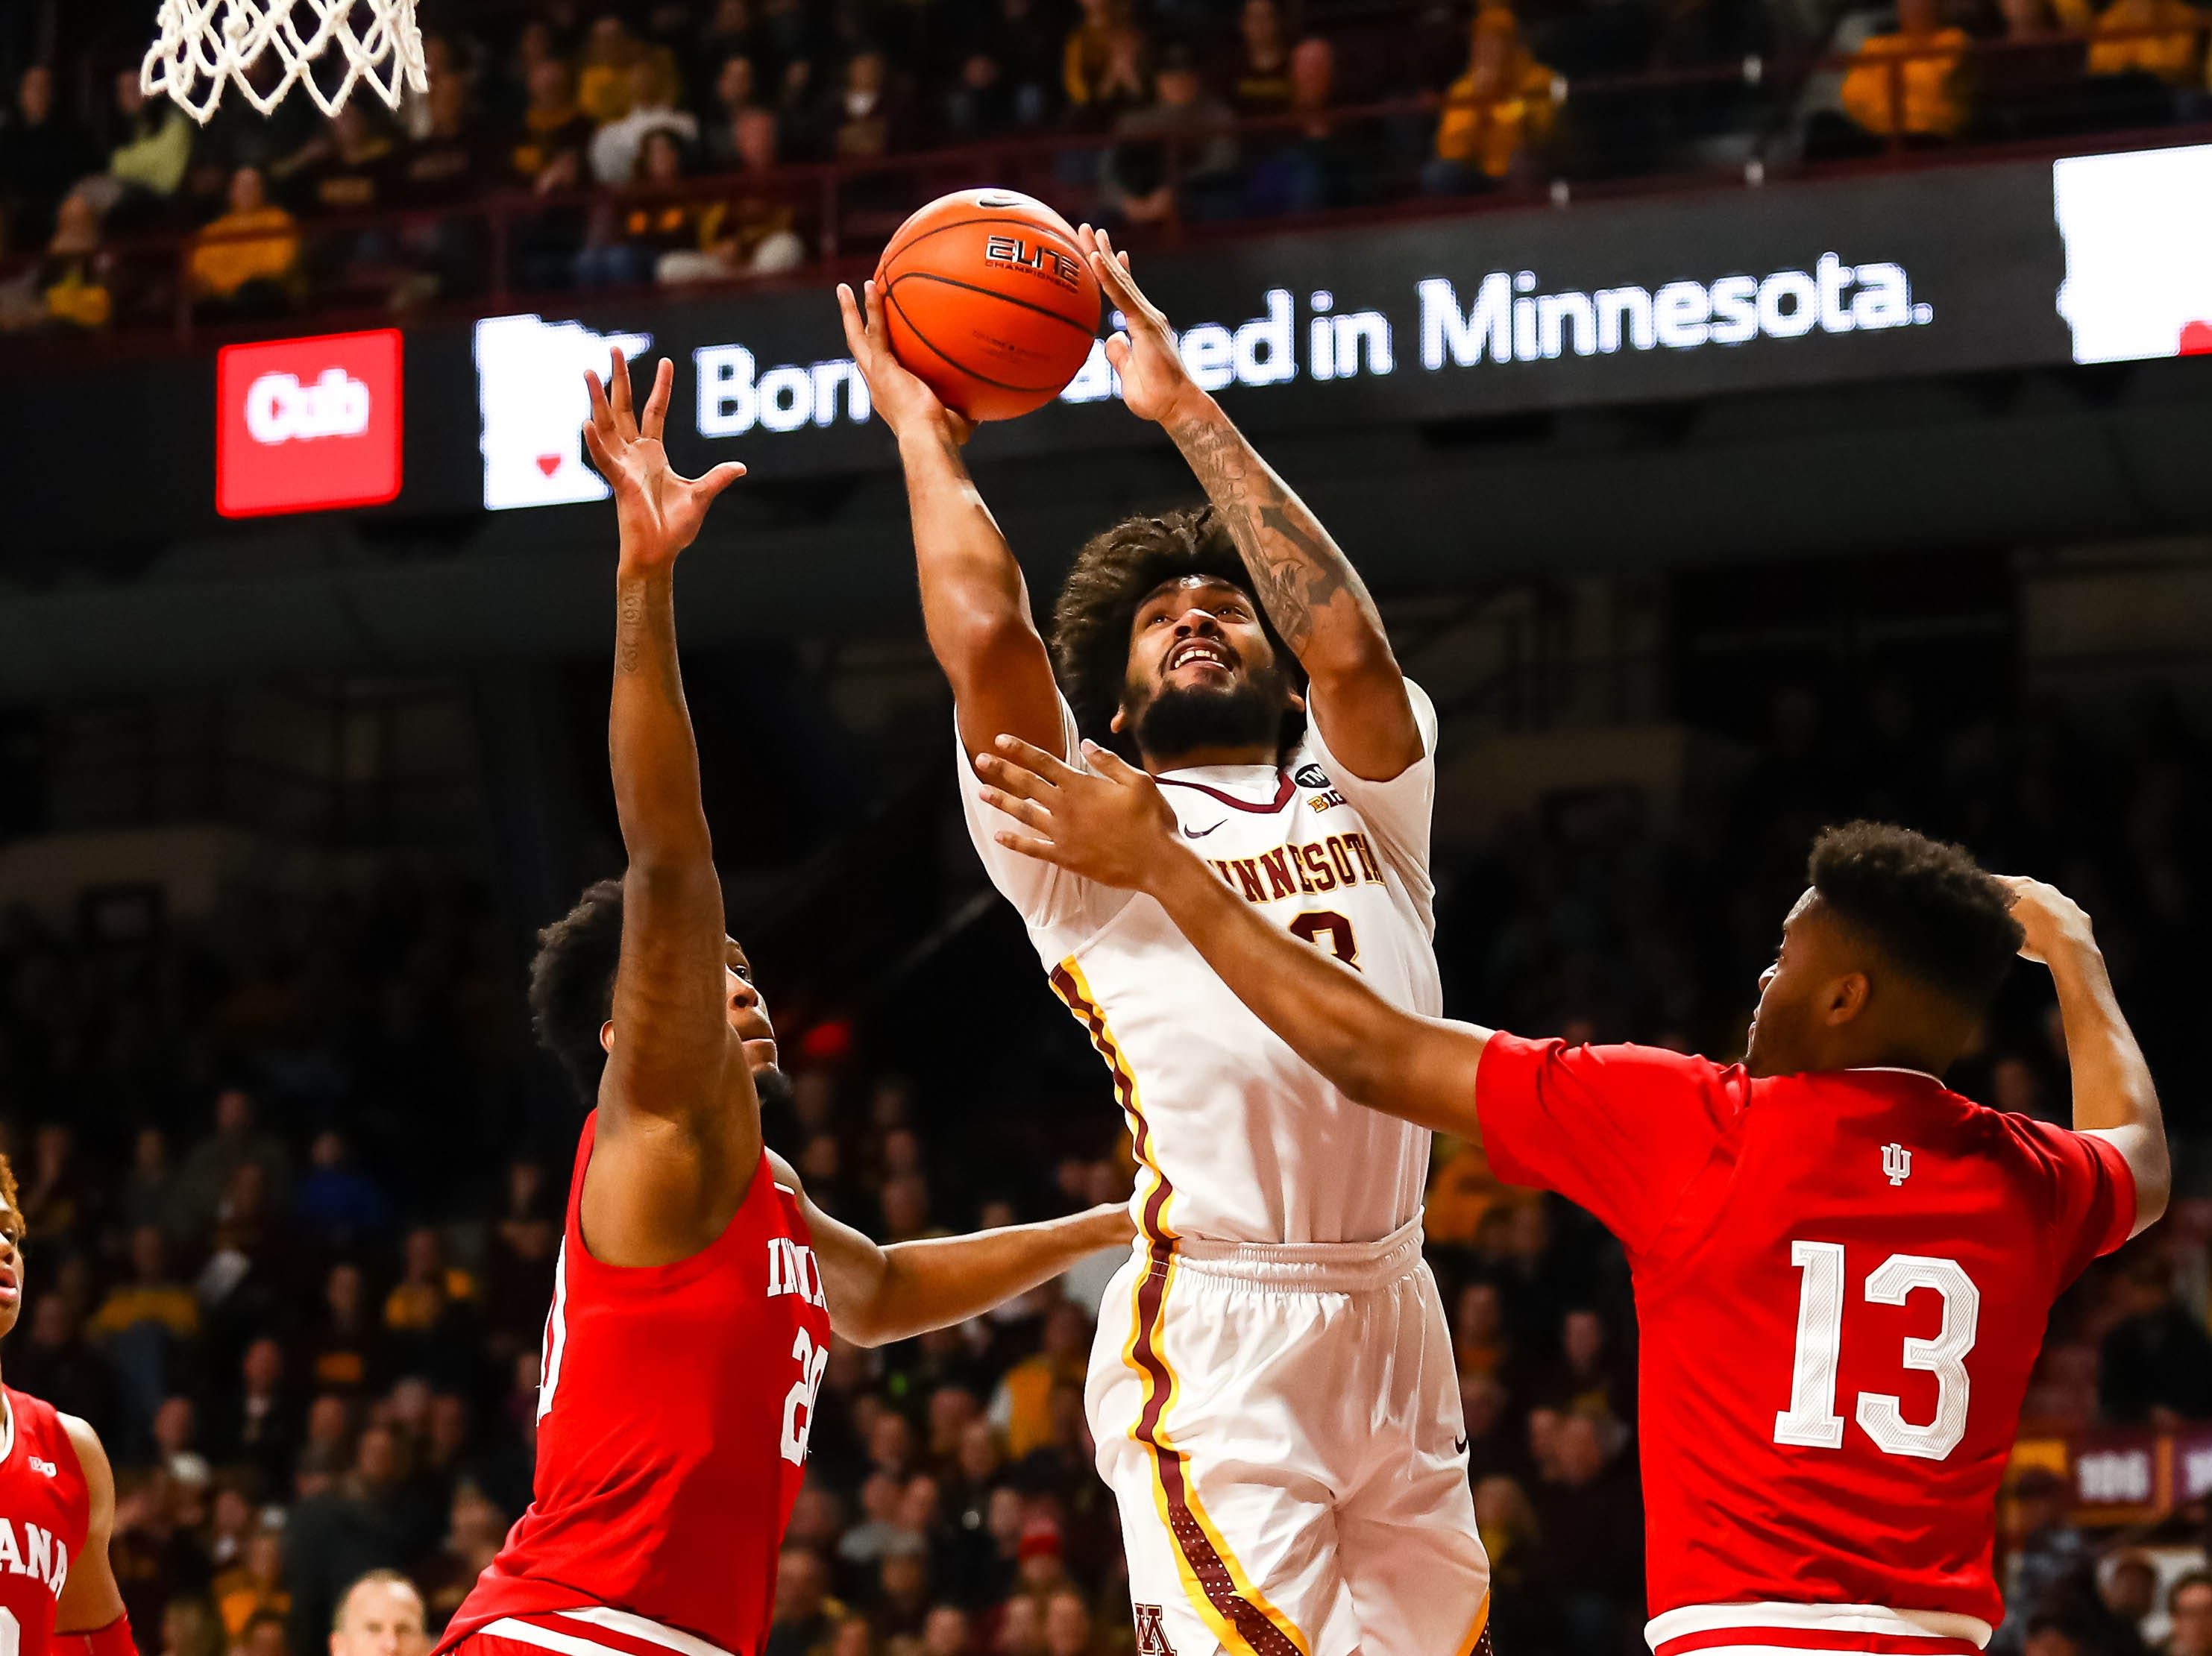 Minnesota Golden Gophers forward Jordan Murphy (3) goes up for a shot while Indiana Hoosiers forward Juwan Morgan (13) defends in the first half at Williams Arena.